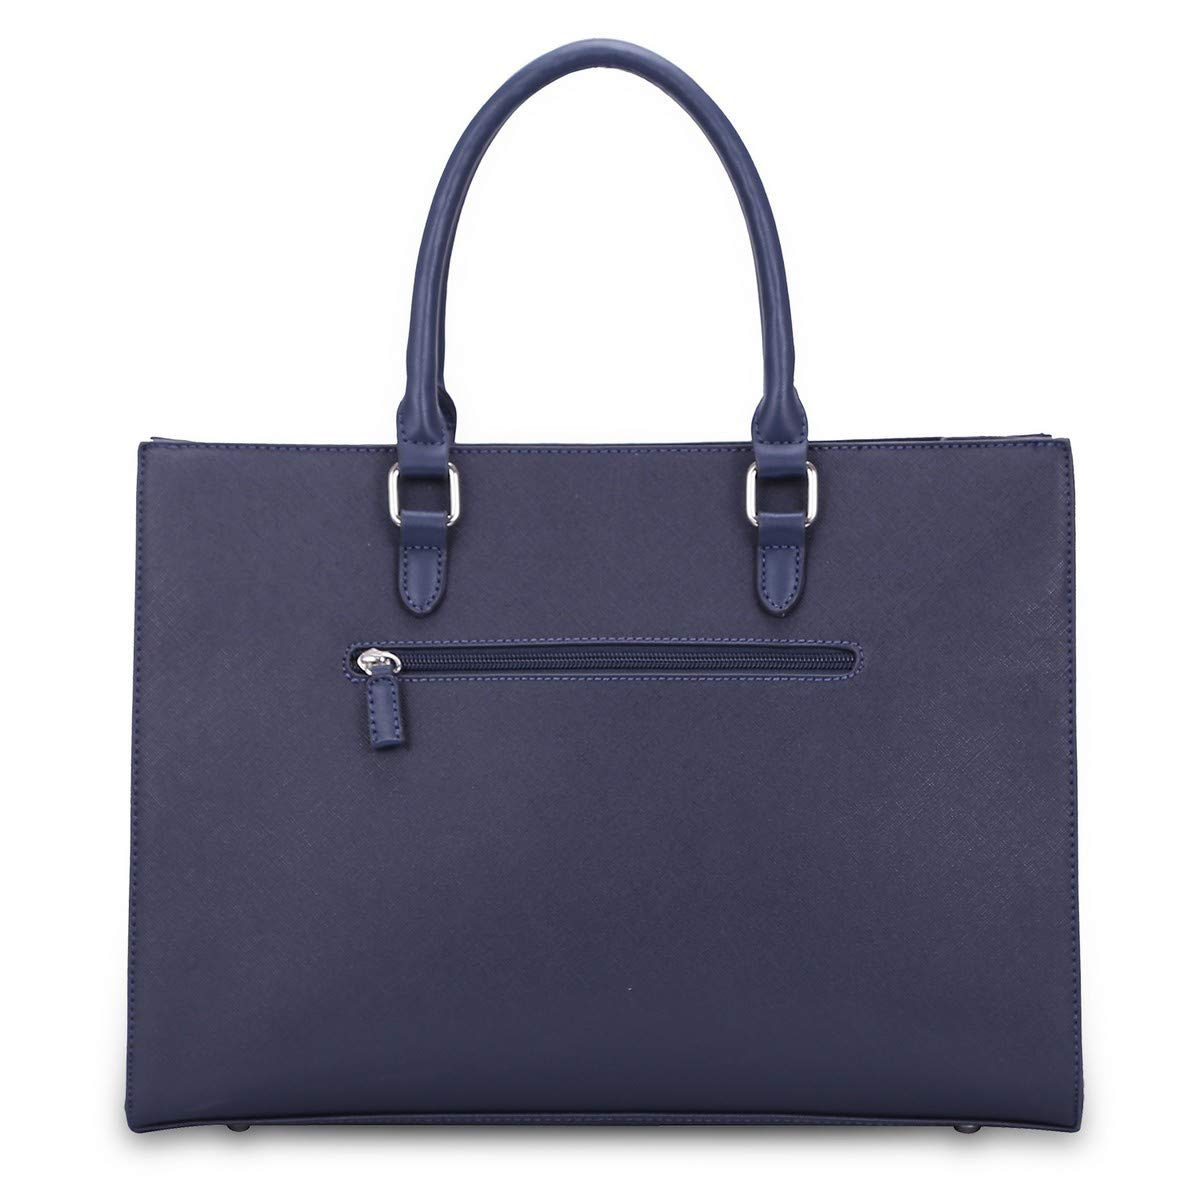 7a7b6e0f32 David Jones – Grand Sac à Main Femme – Cabas Fourre-Tout Cuir PU ...